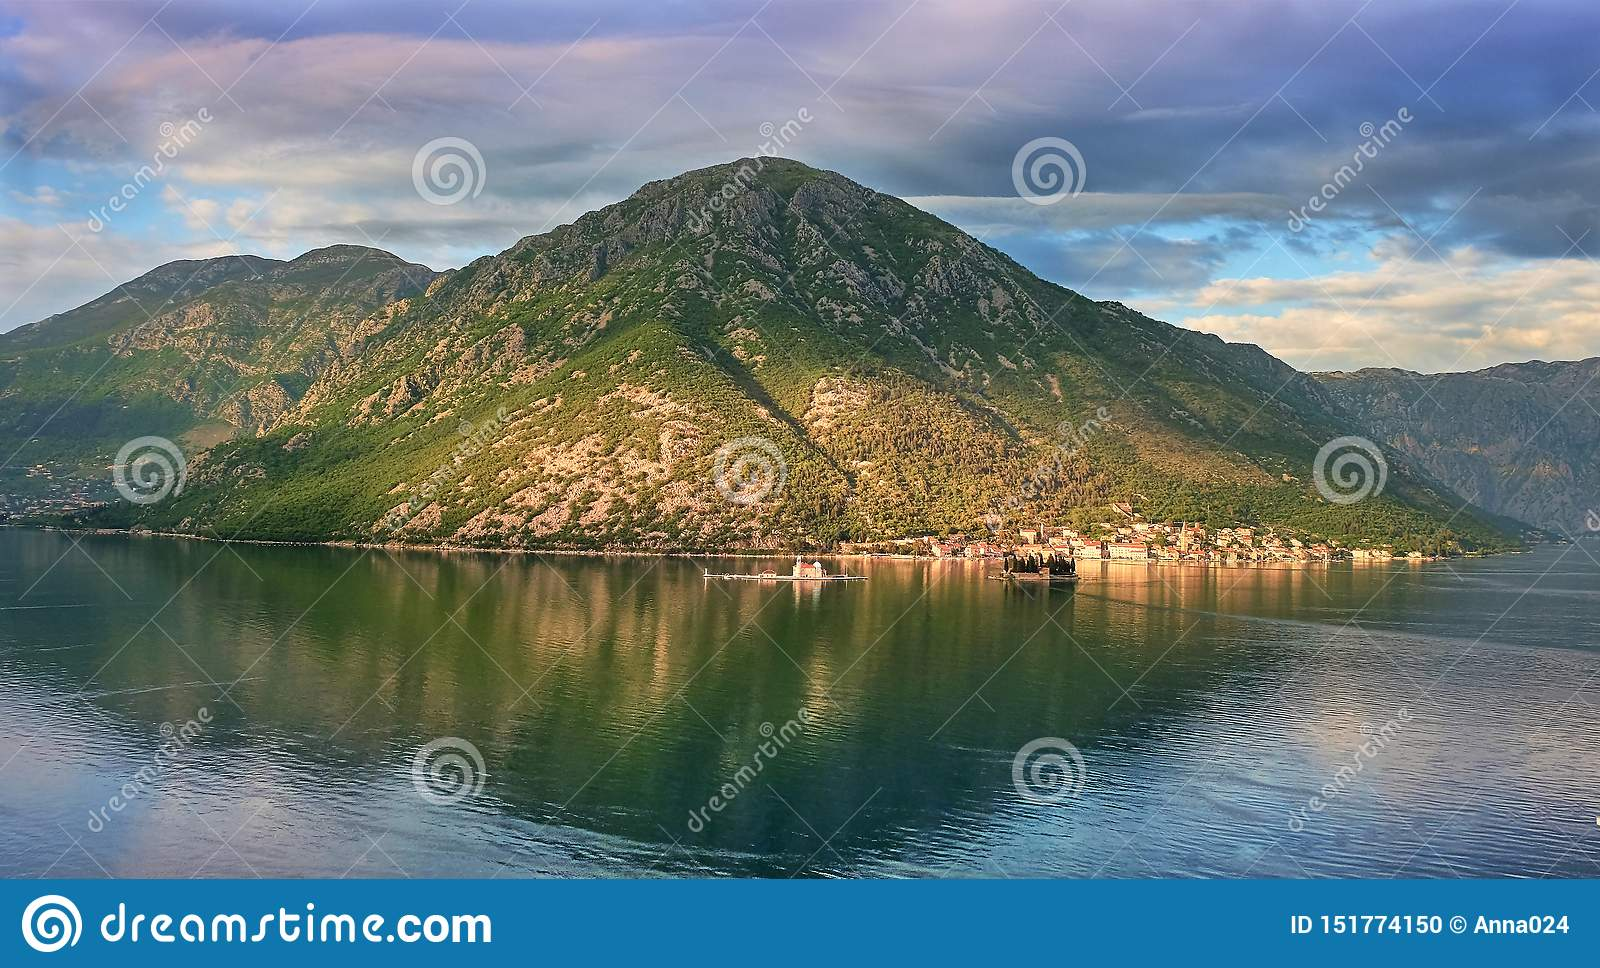 Canonical view in the Kotor bay, Montenegro.